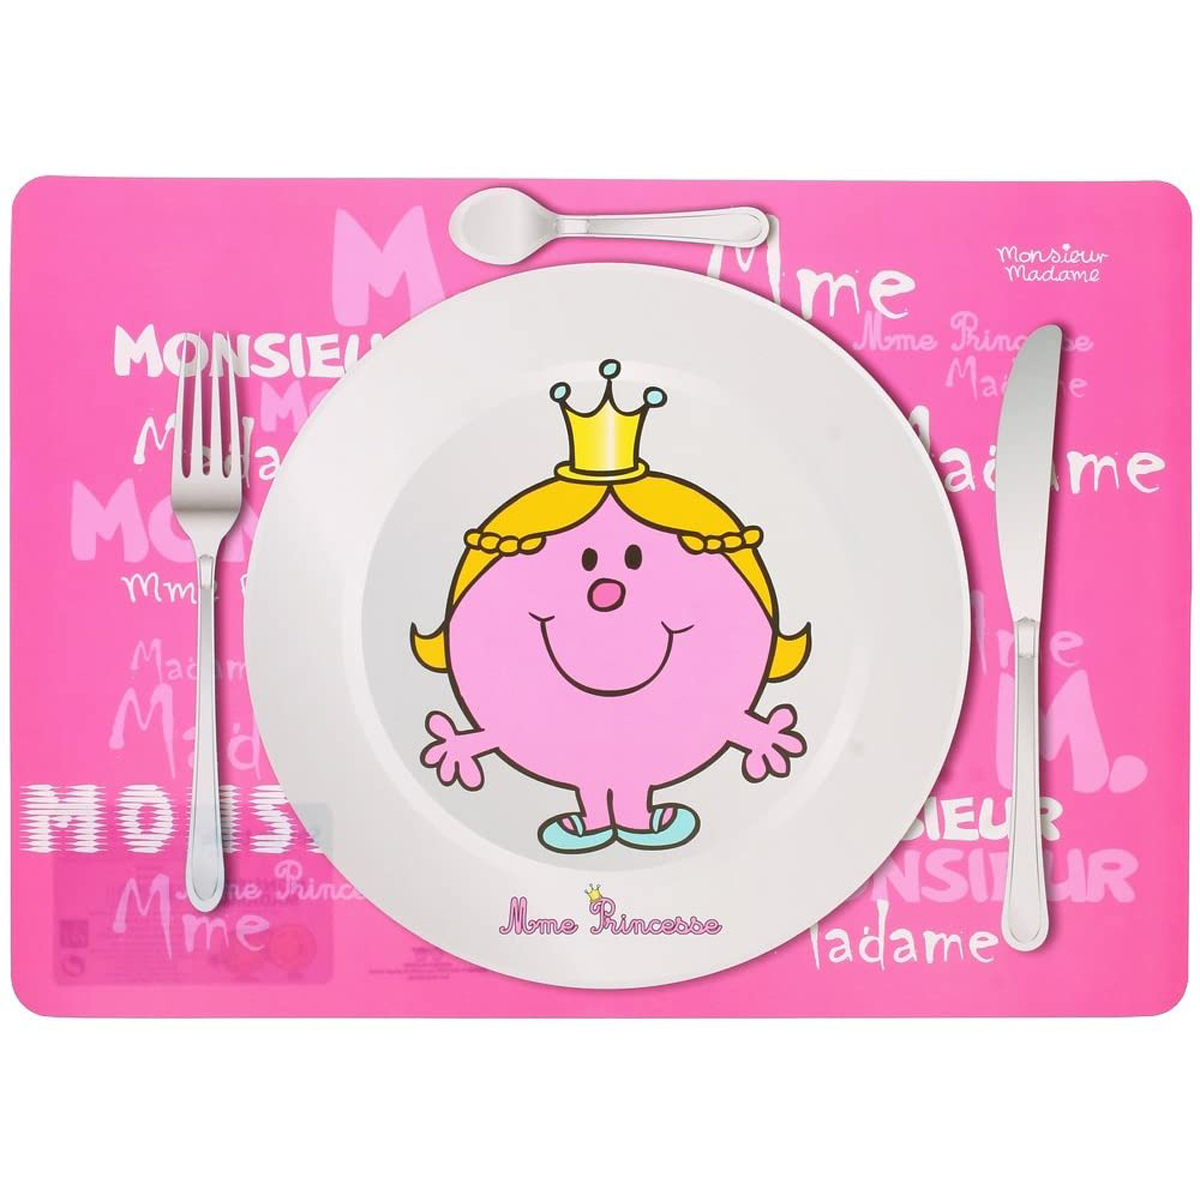 Set de table \'Monsieur Madame\' rose (Mme Princesse) - 40x30 cm - [A1539]